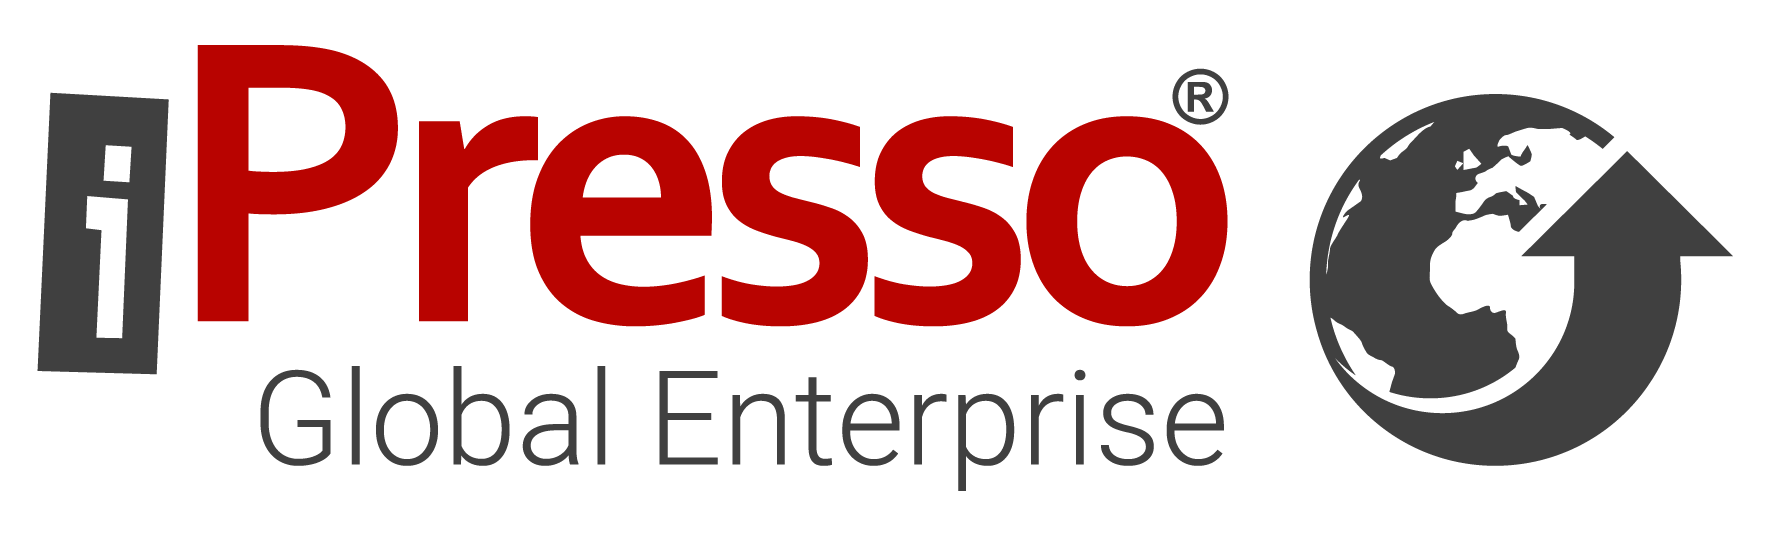 iPresso Global Enterprise